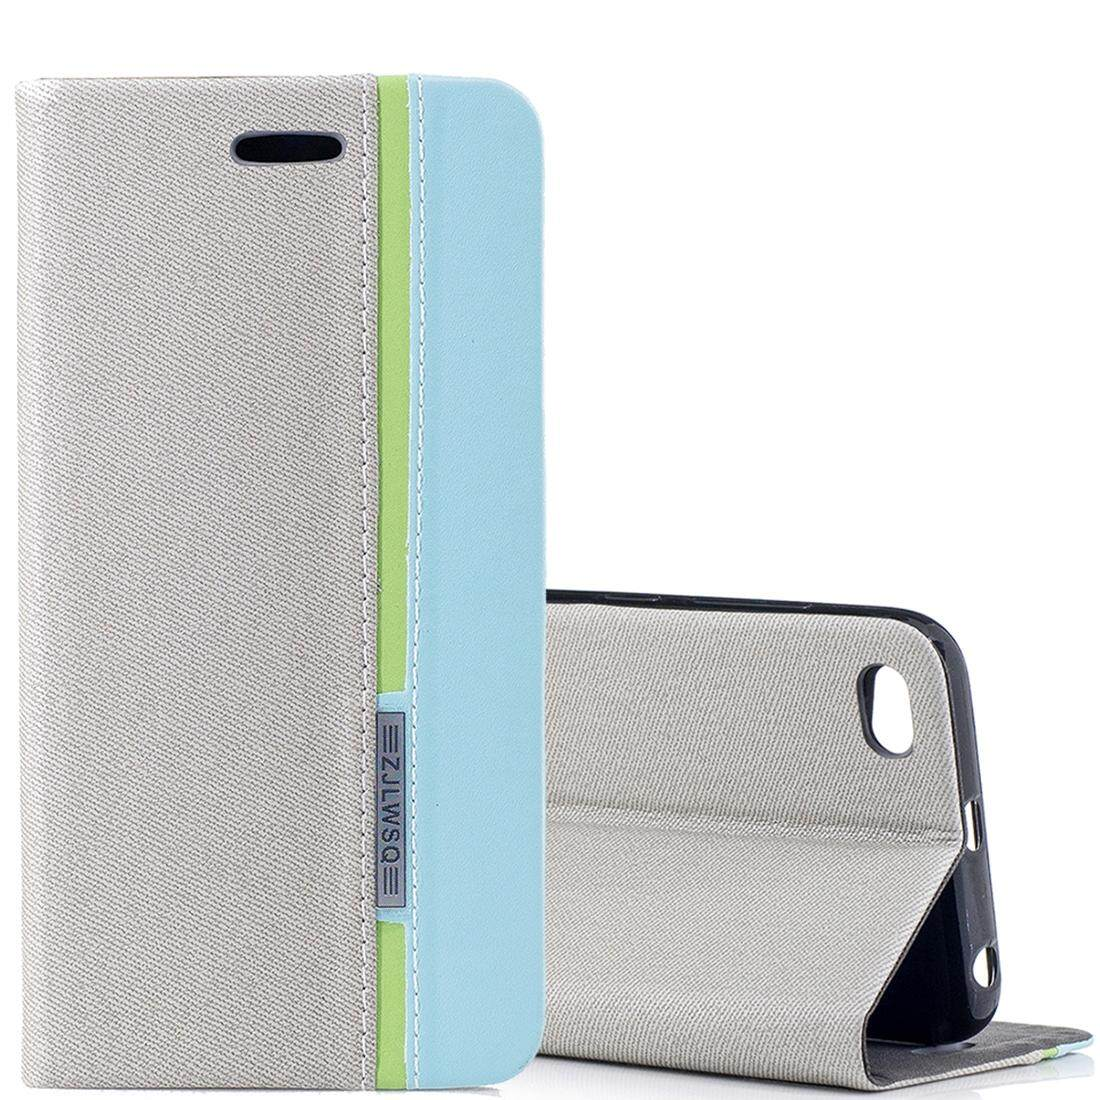 Xiaomi Redmi 5A Contrast Color Canvas Texture Horizontal Flip Leather Case with Holder and Card Slot